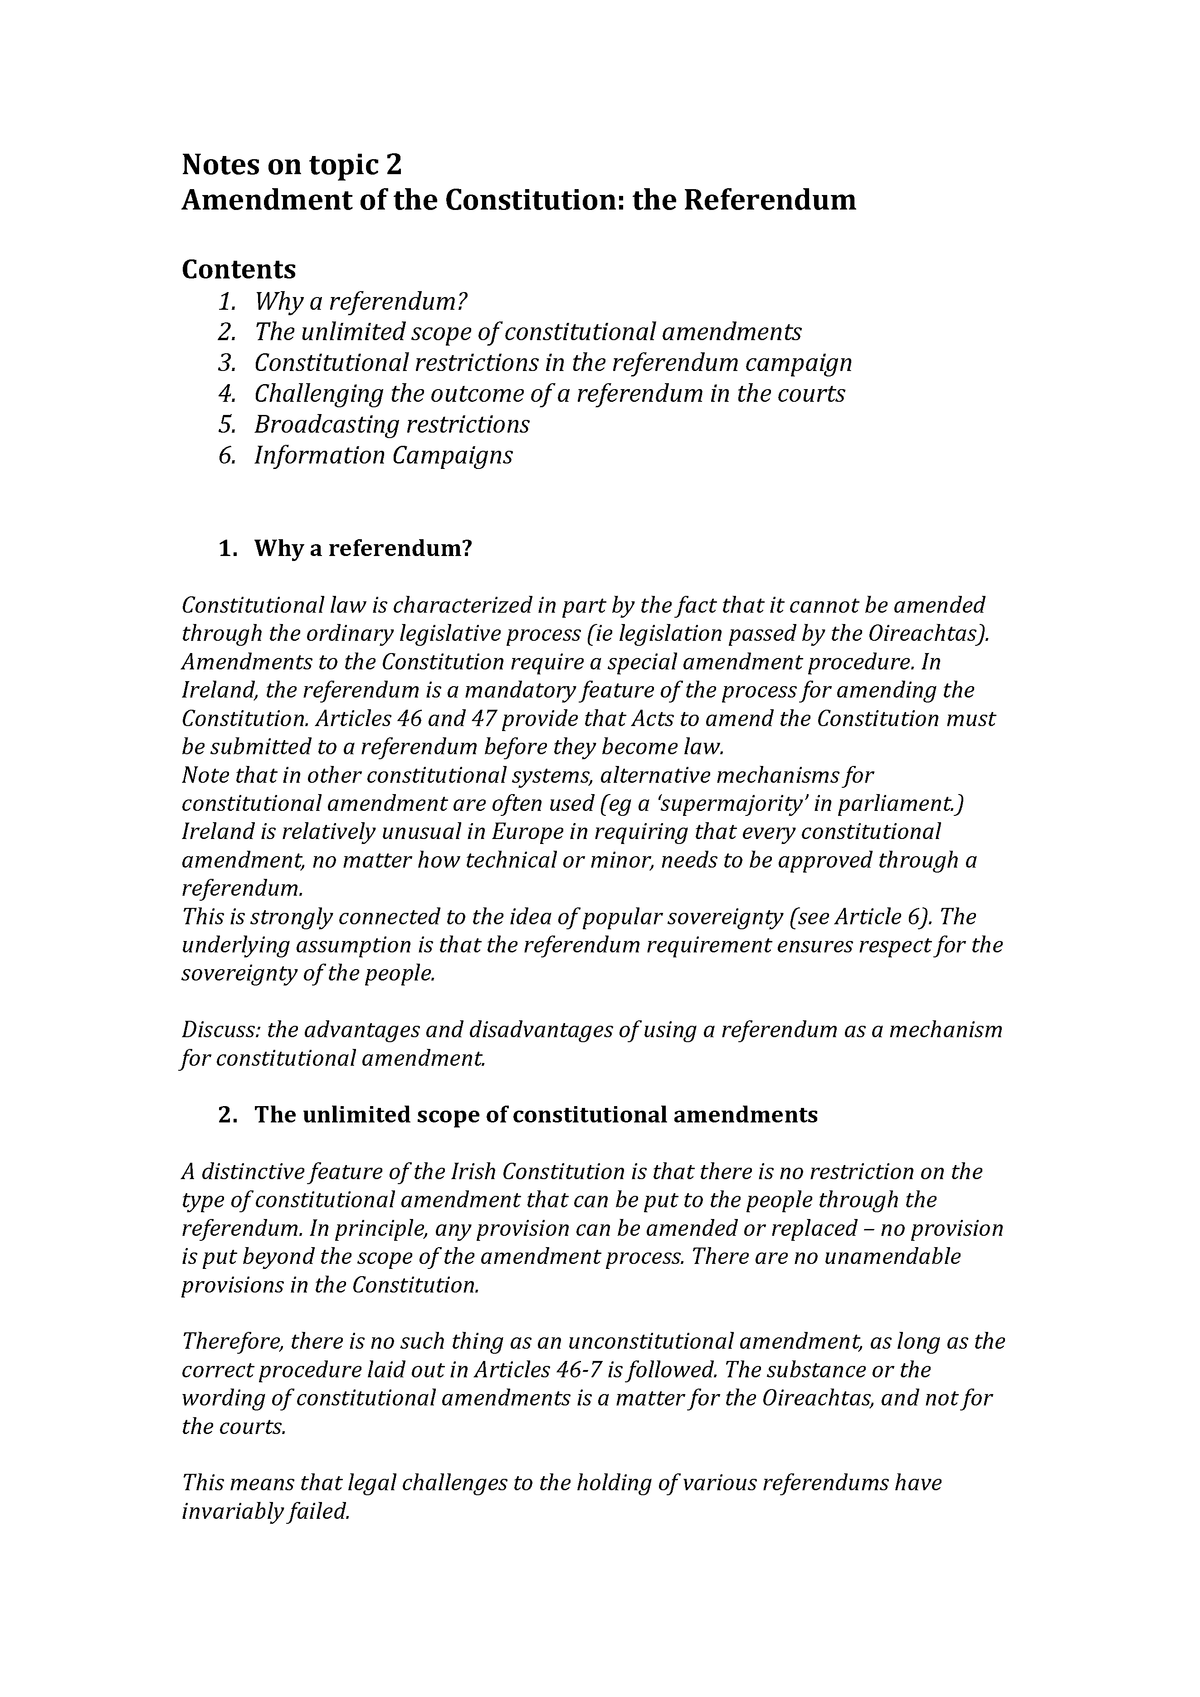 Overview notes on topic 2 (referendum) - Law LW - NUI Galway